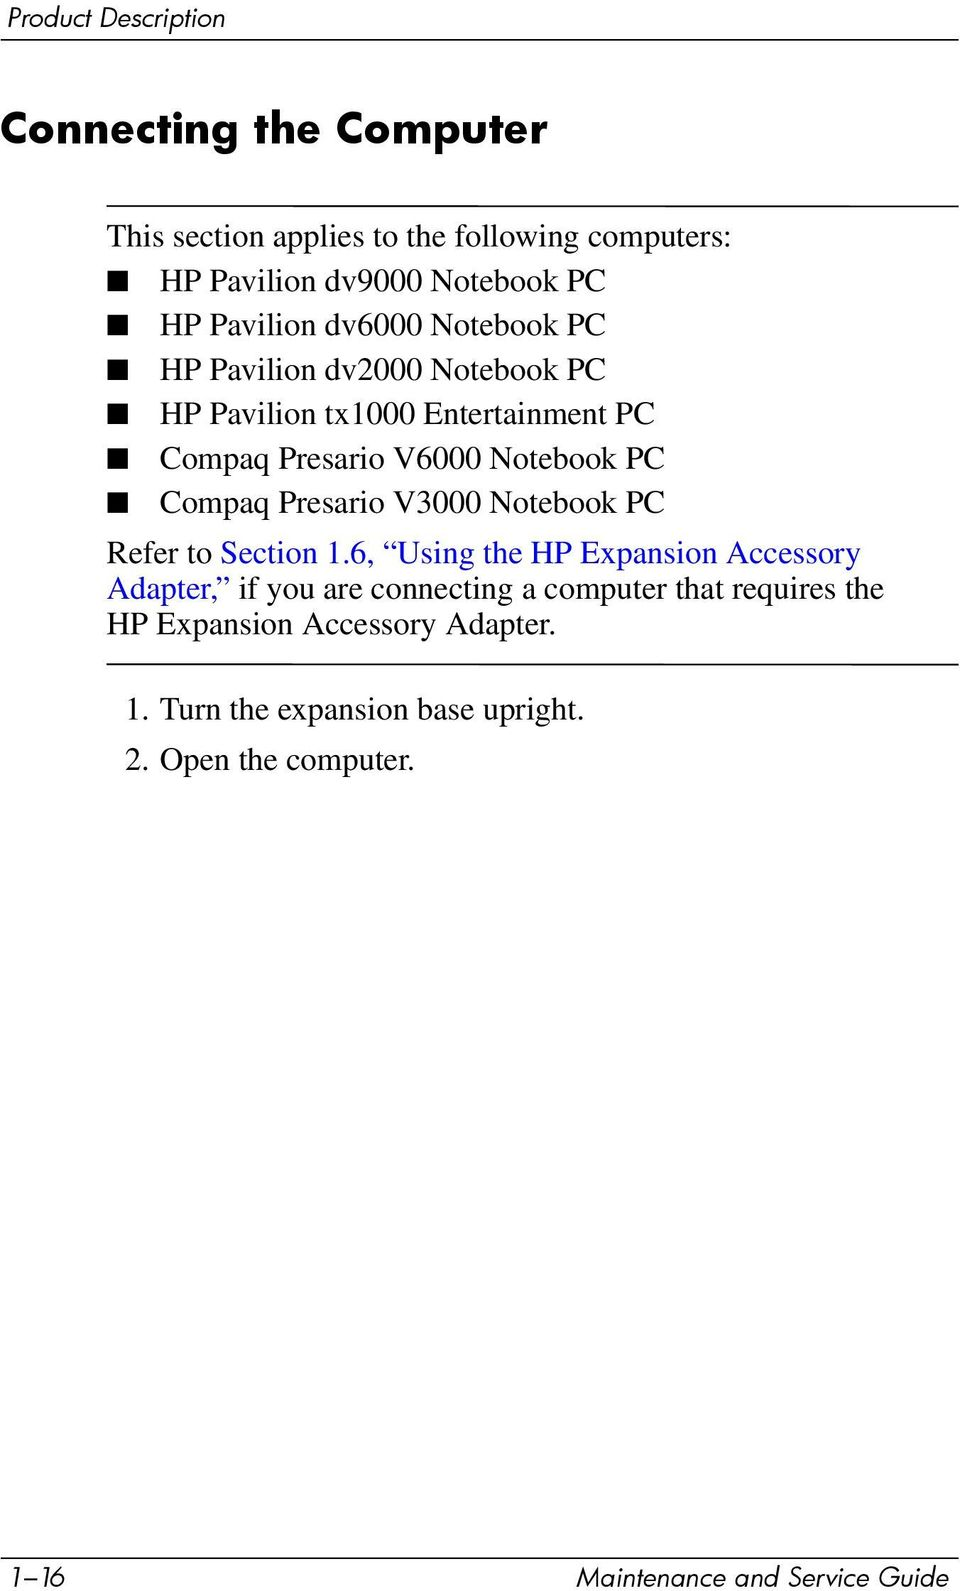 ... Maintenance and Service Guide. Compaq Presario V3000 Notebook PC Refer  to Section 1.